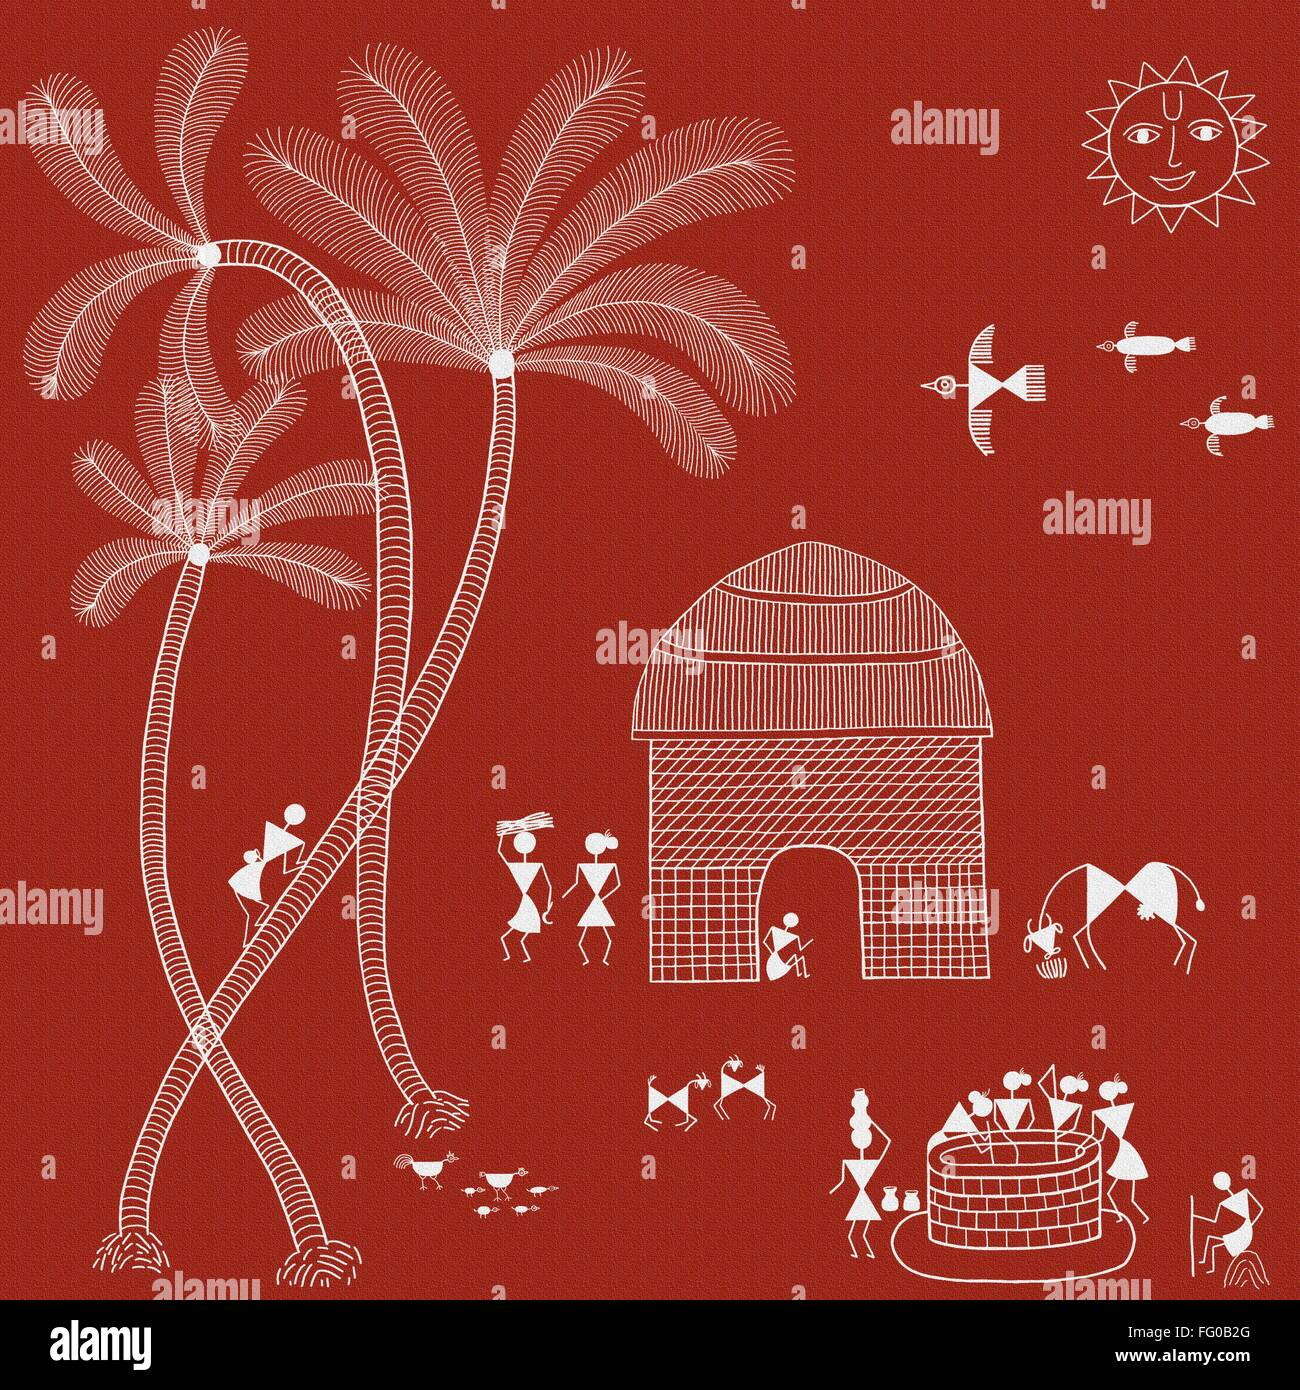 Warli painting india asia stock photo 95895032 alamy warli painting india asia thecheapjerseys Image collections